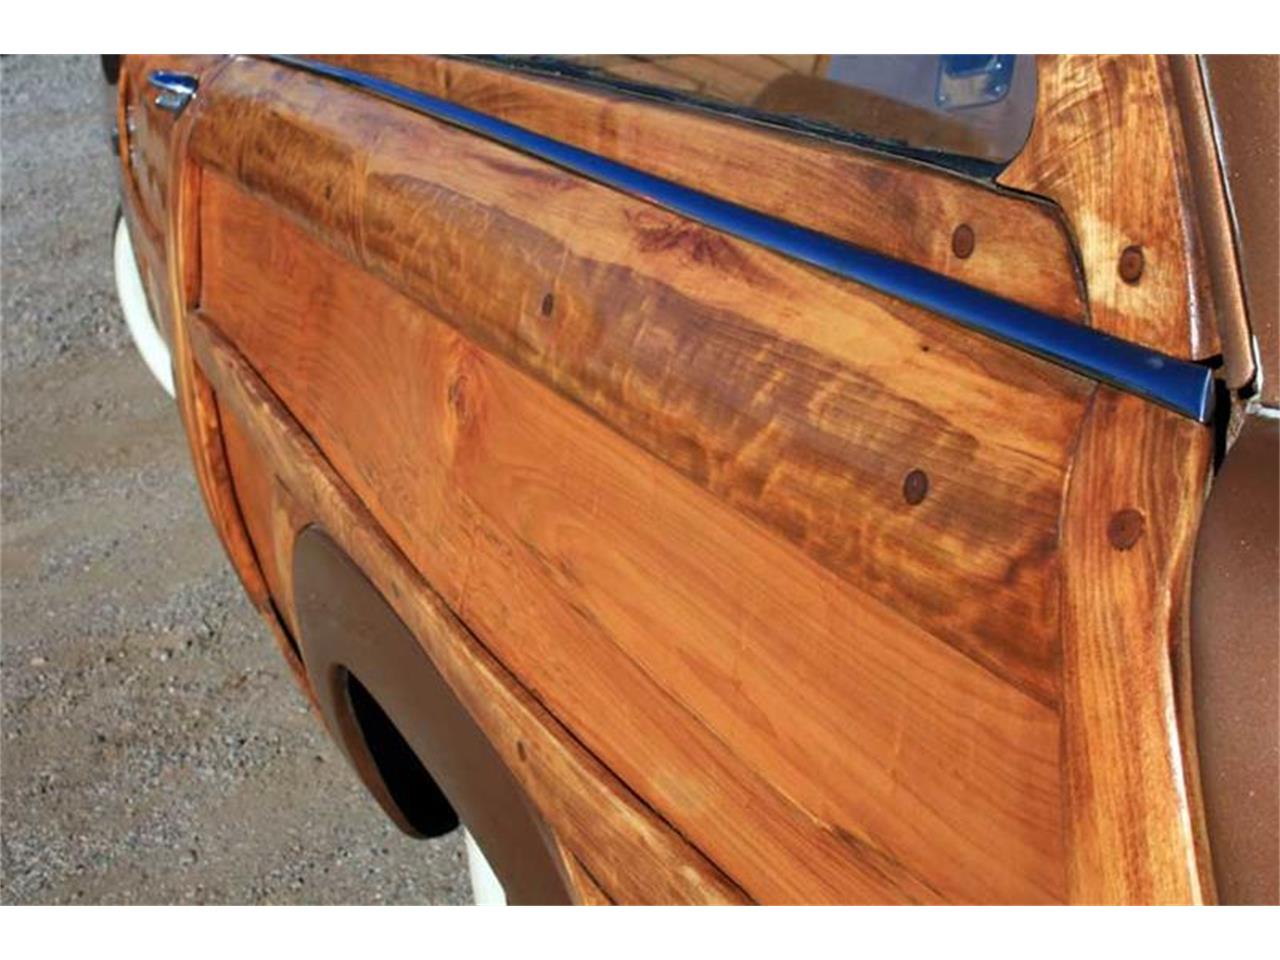 Large Picture of Classic 1951 Ford Woody Wagon - $45,000.00 - EACH